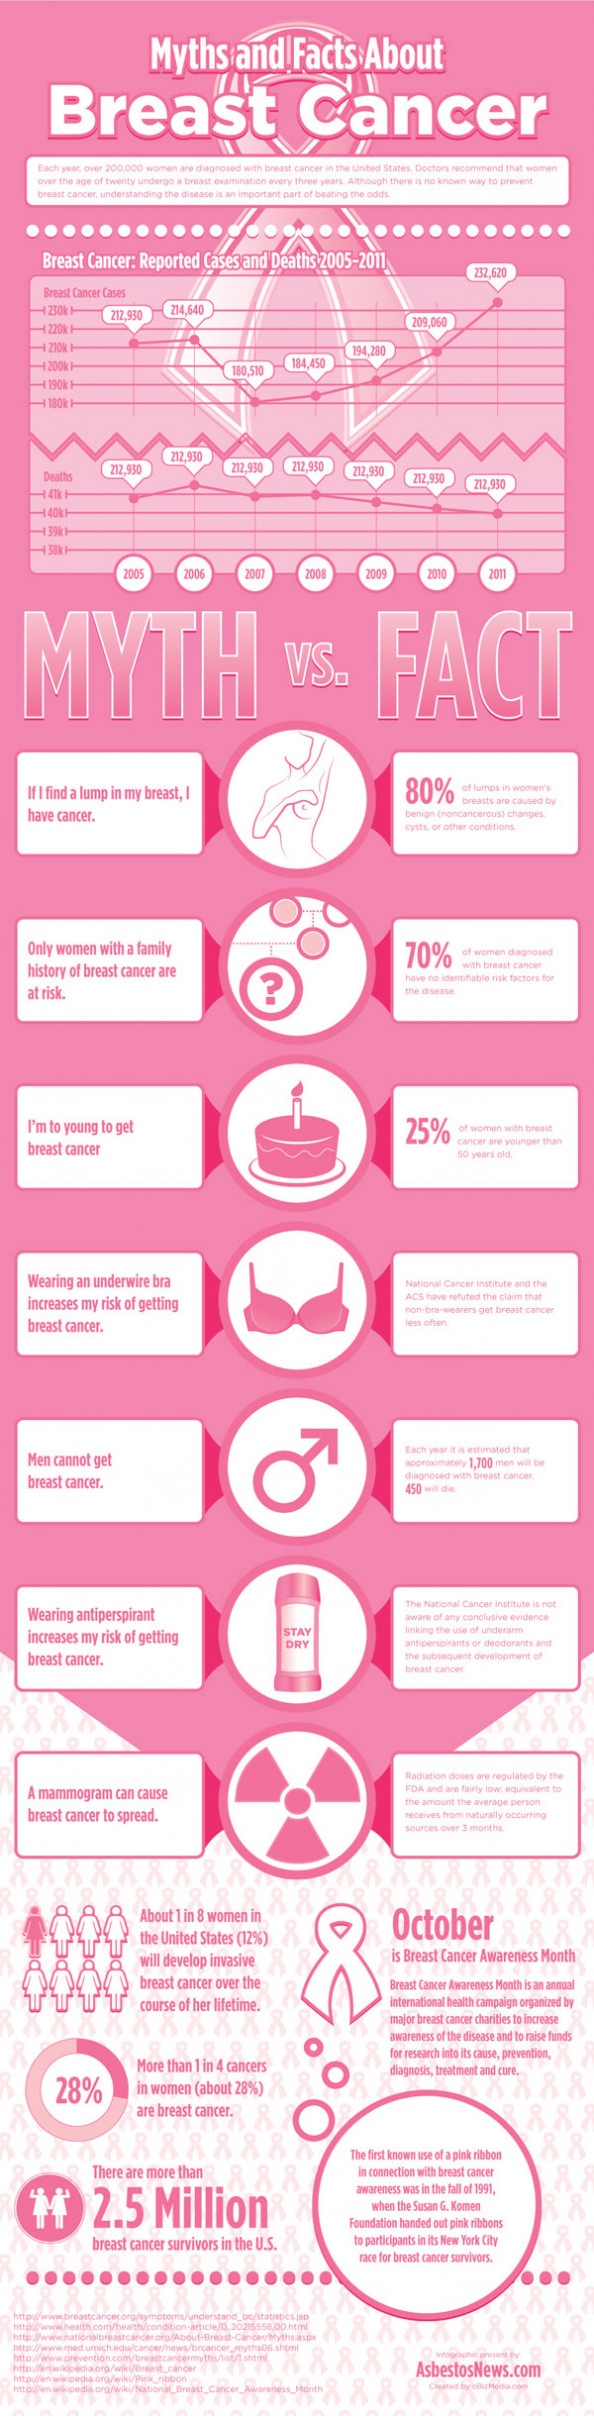 Myths & Facts About Breast Cancer Infographic